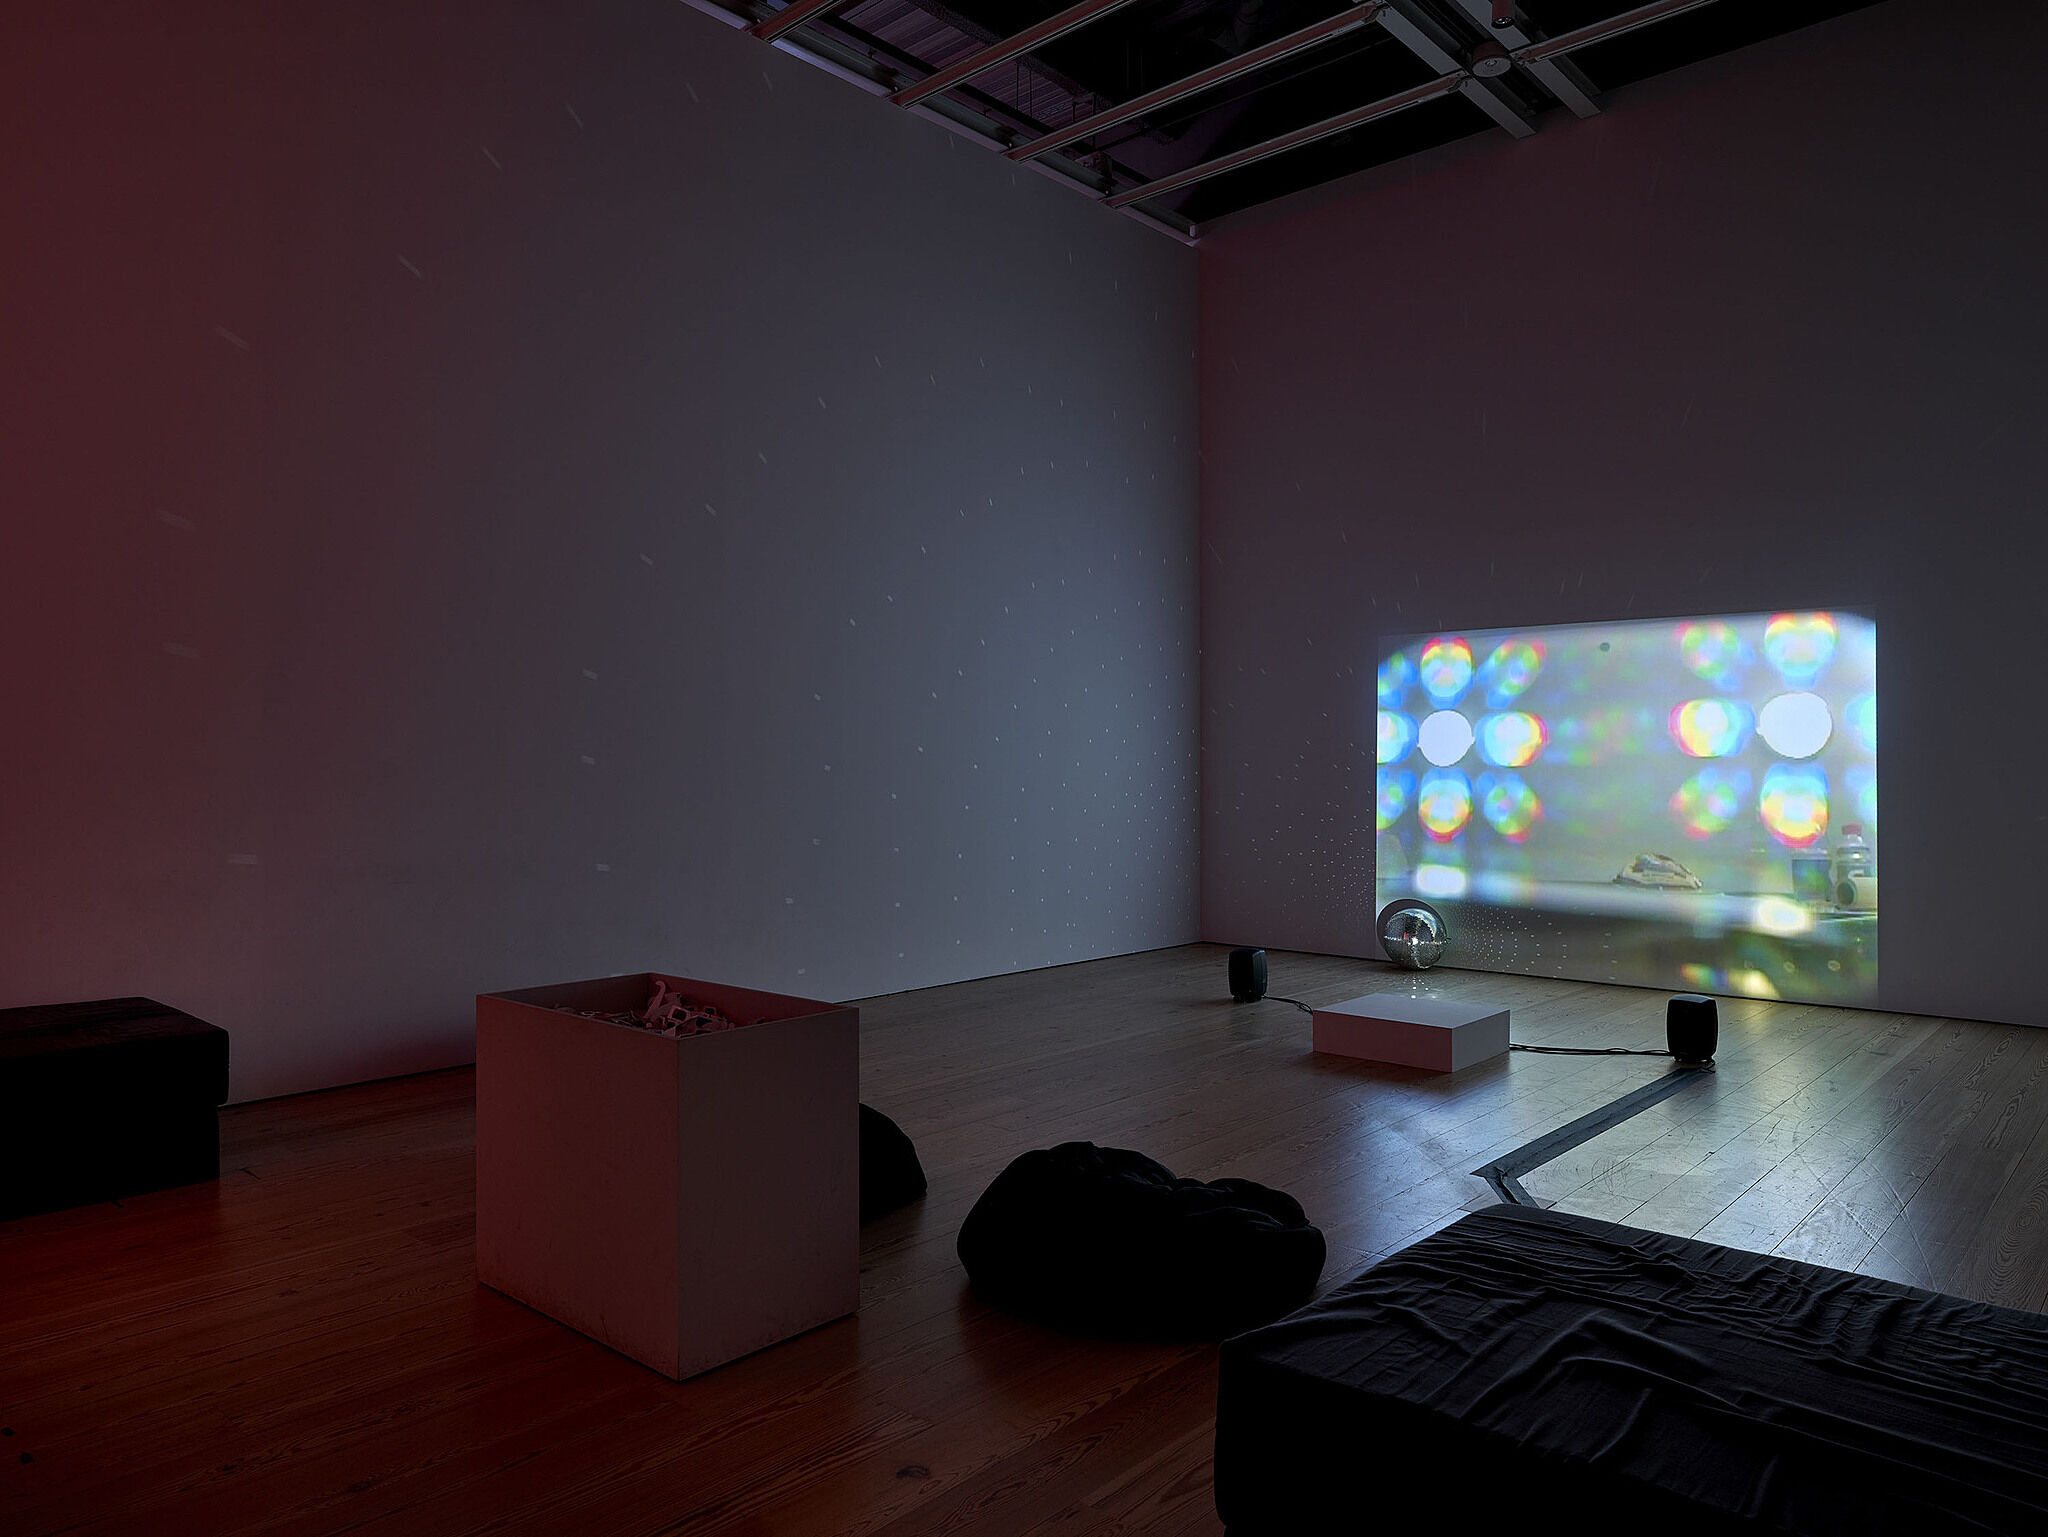 A video installation with a screen showing bright shapes of light.